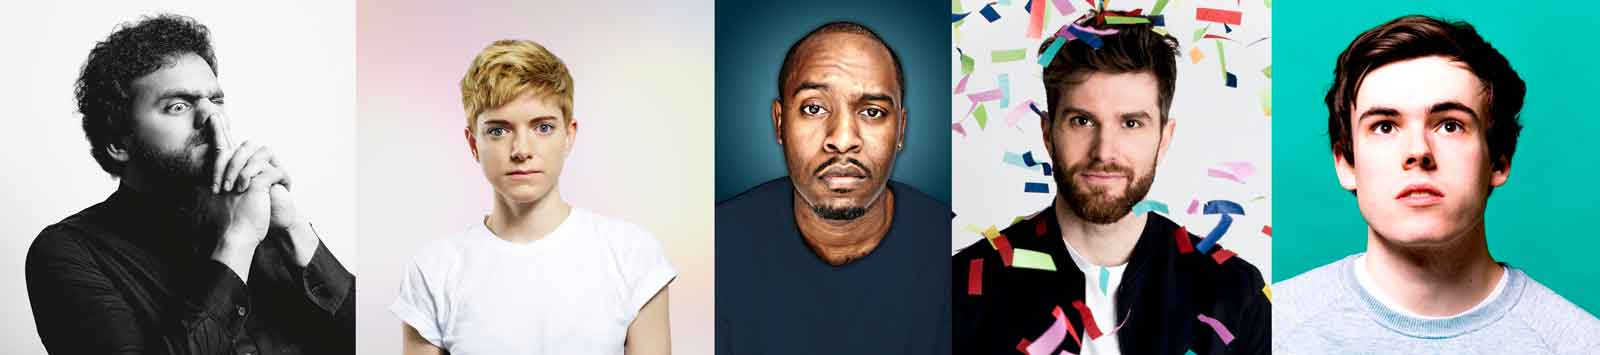 Edinburgh Fringe Festival Comedy with British Airways and Nish Kumar, Mae Martin, Joel Dommett, Rhys James and Dane Baptiste